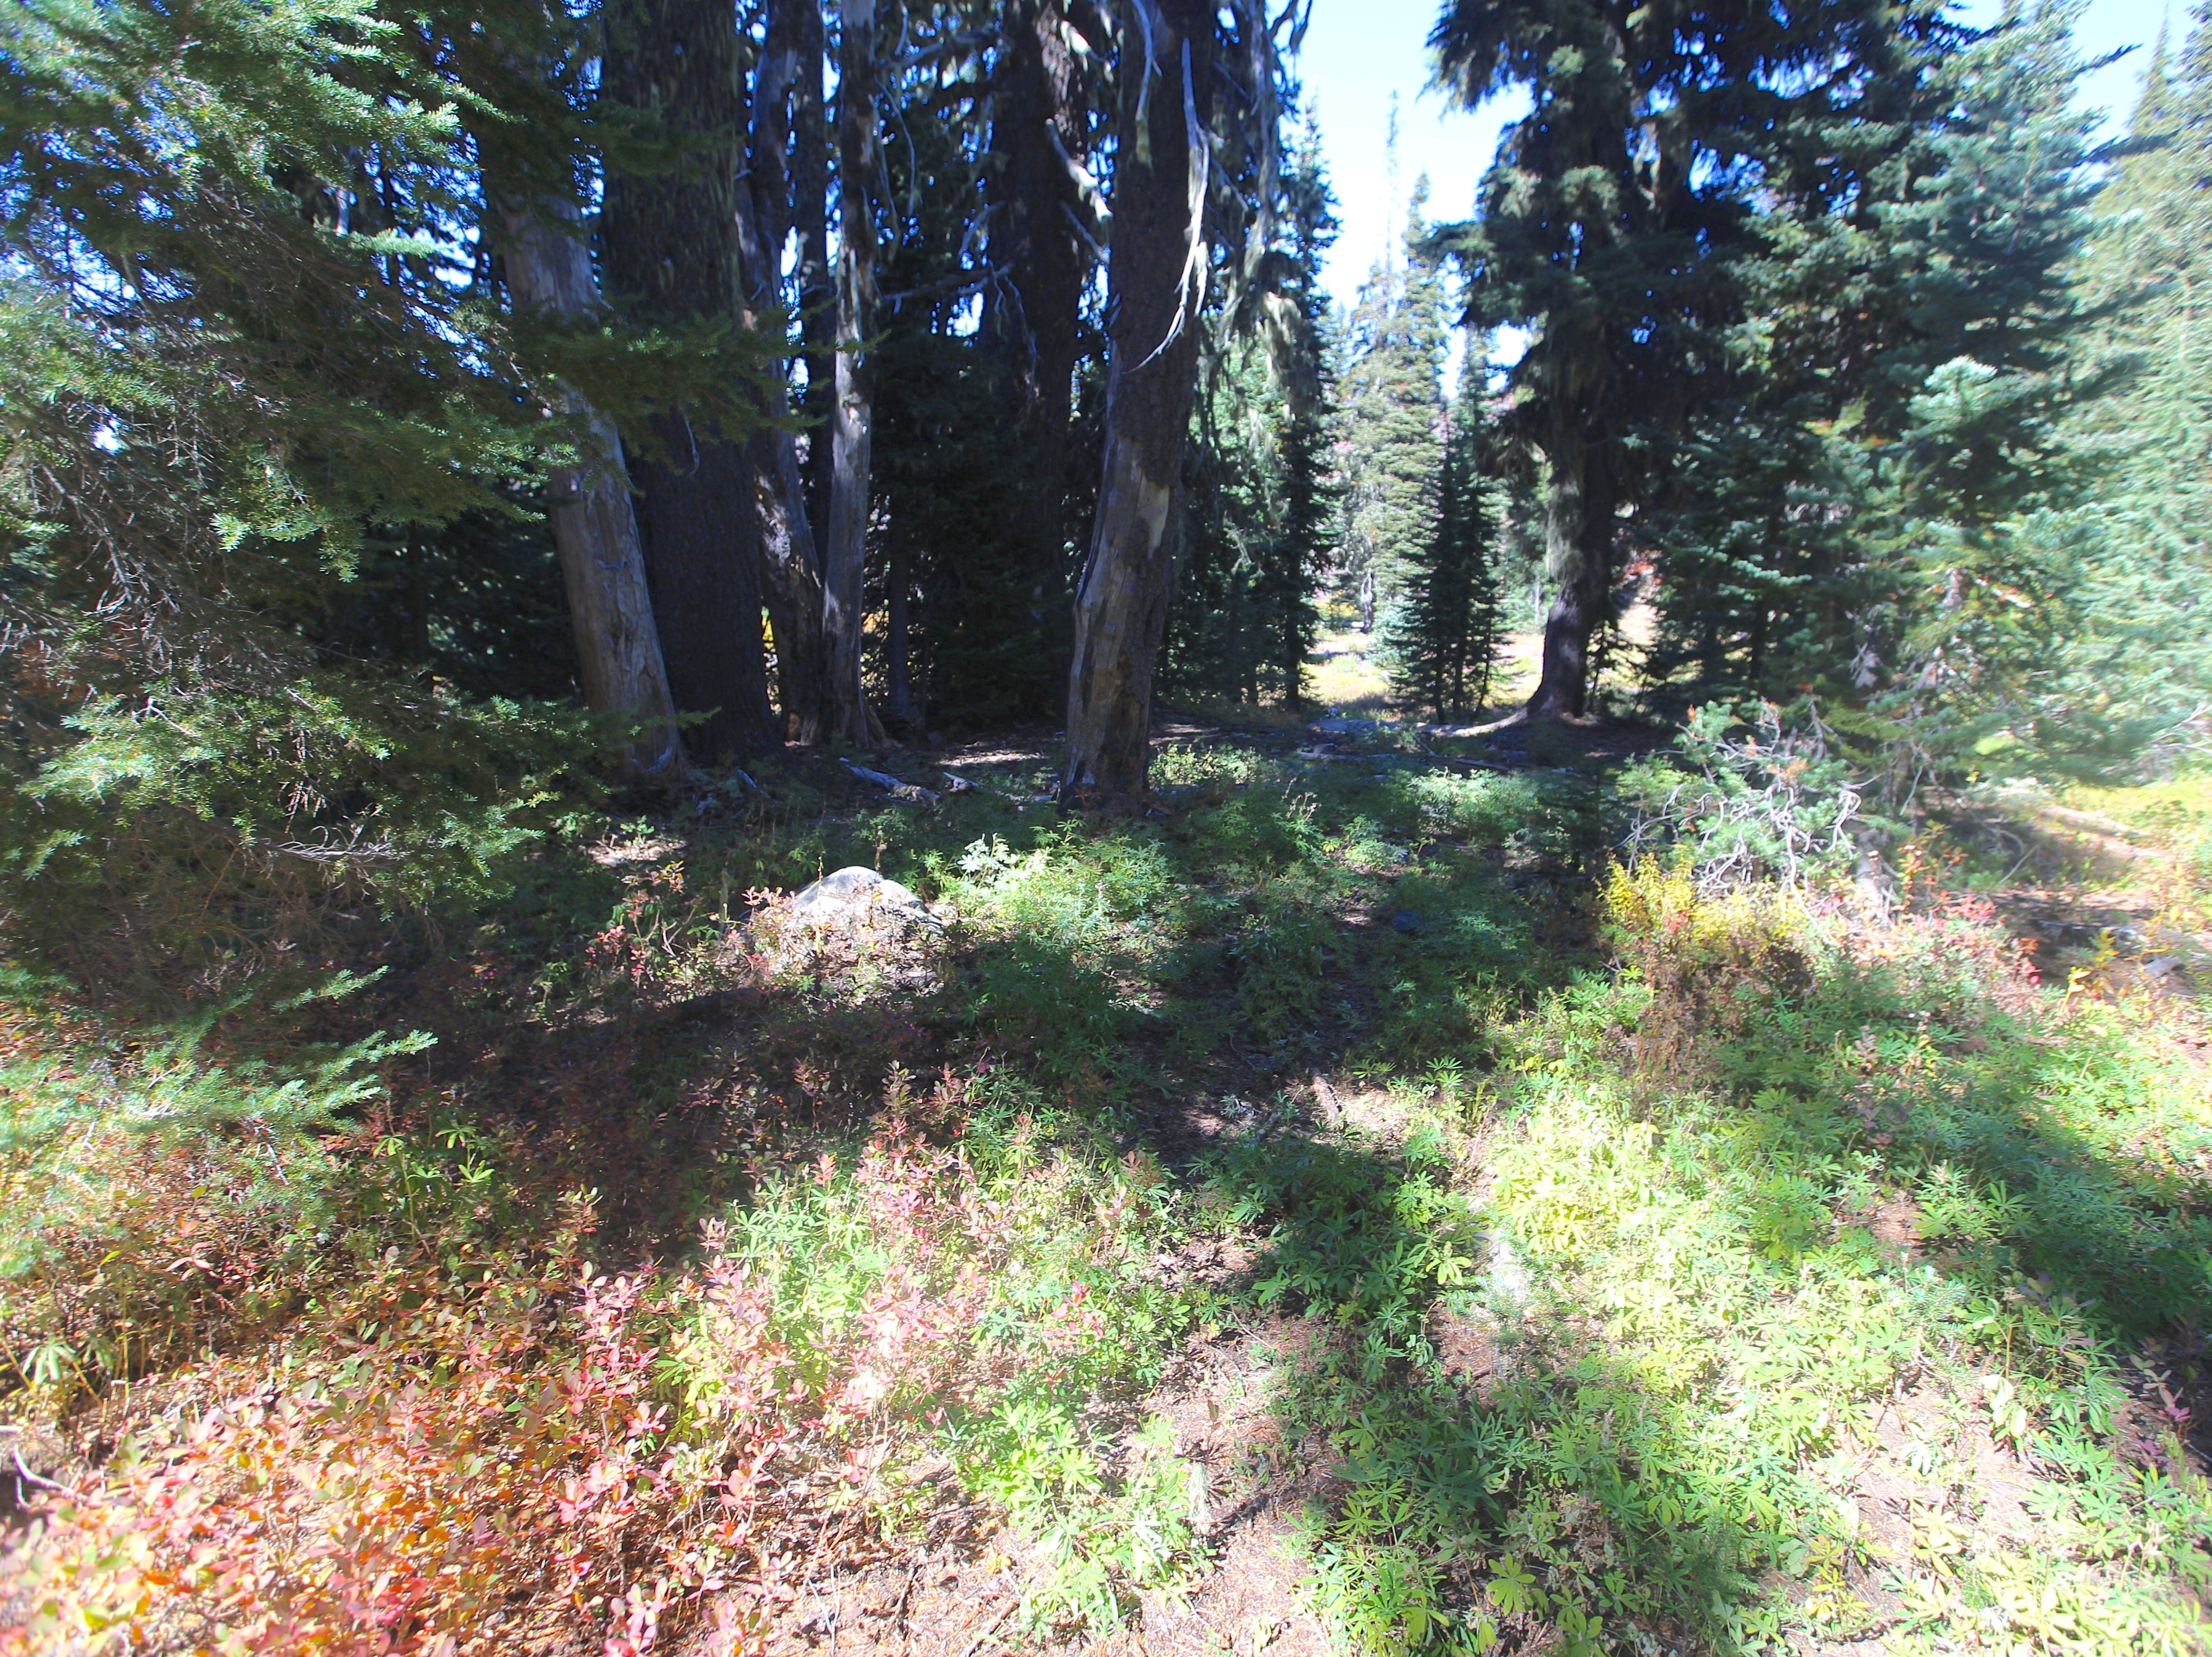 This plot was once barren ground along Obsidian Trail. Today, it has regenerated.